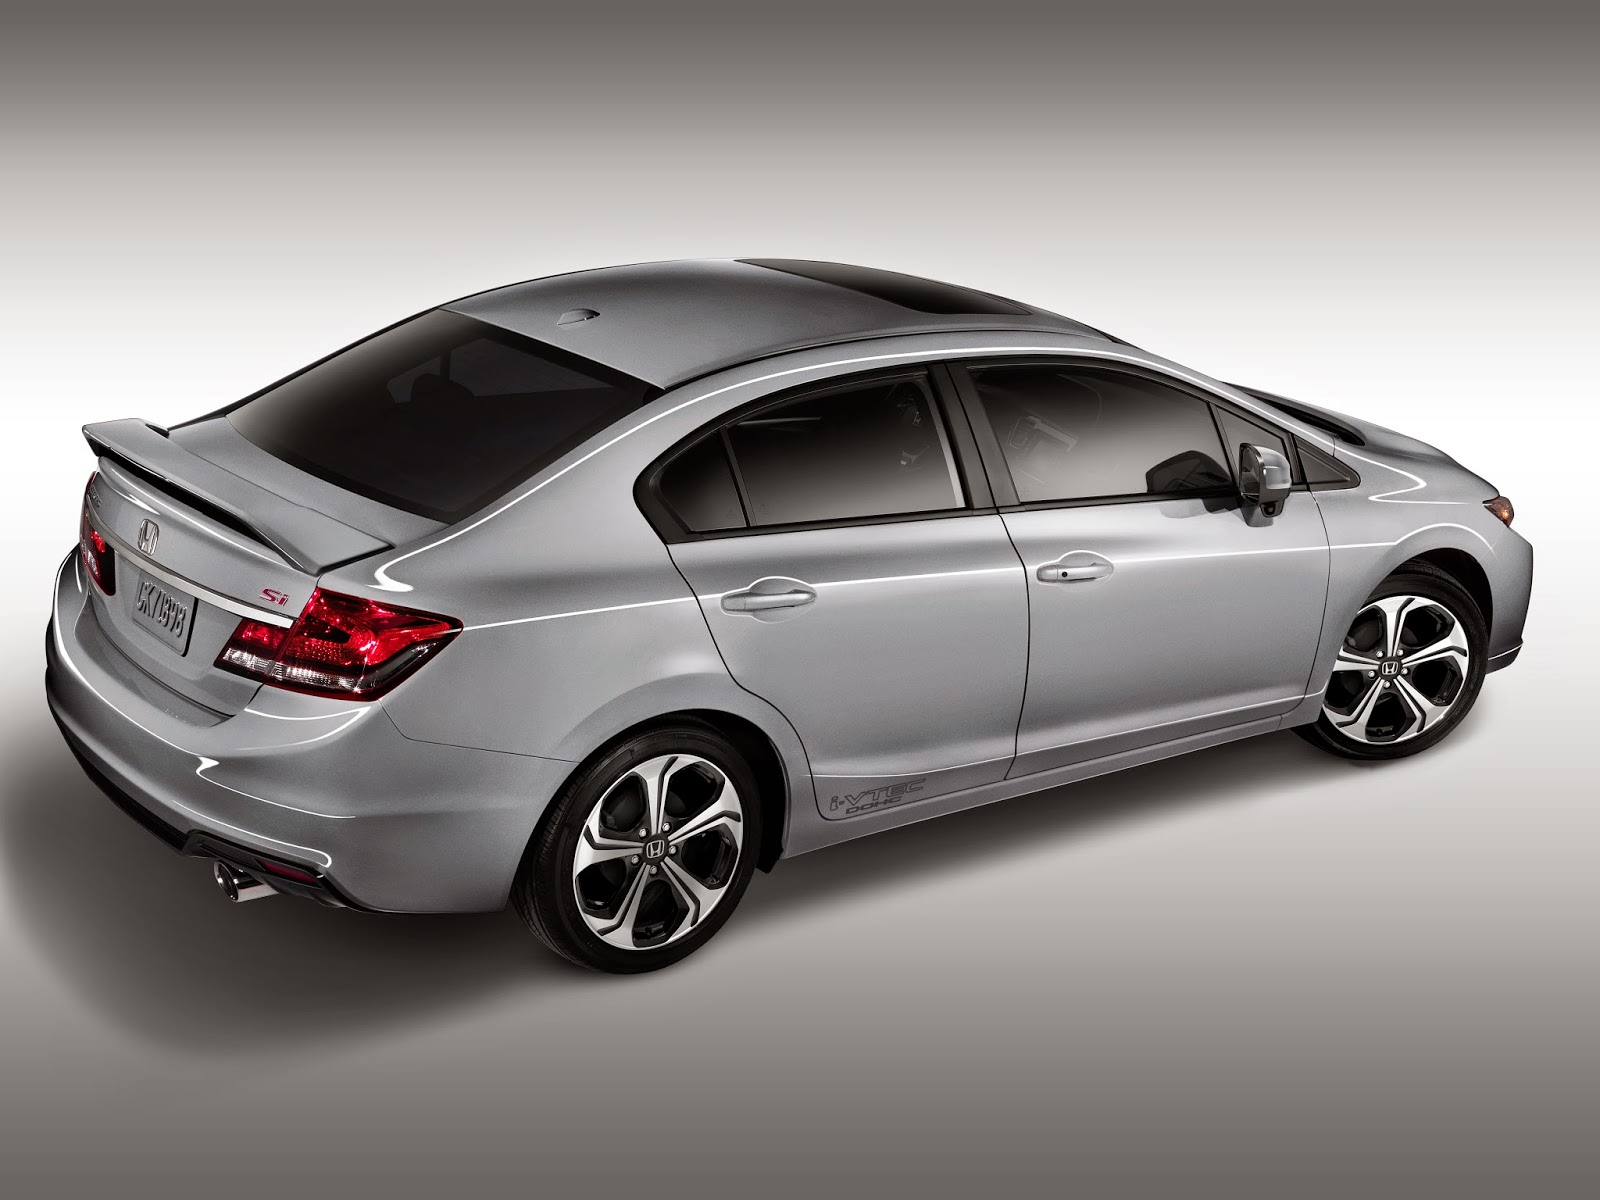 Rear 3/4 view of the 20145 Honda Civic Si sedan